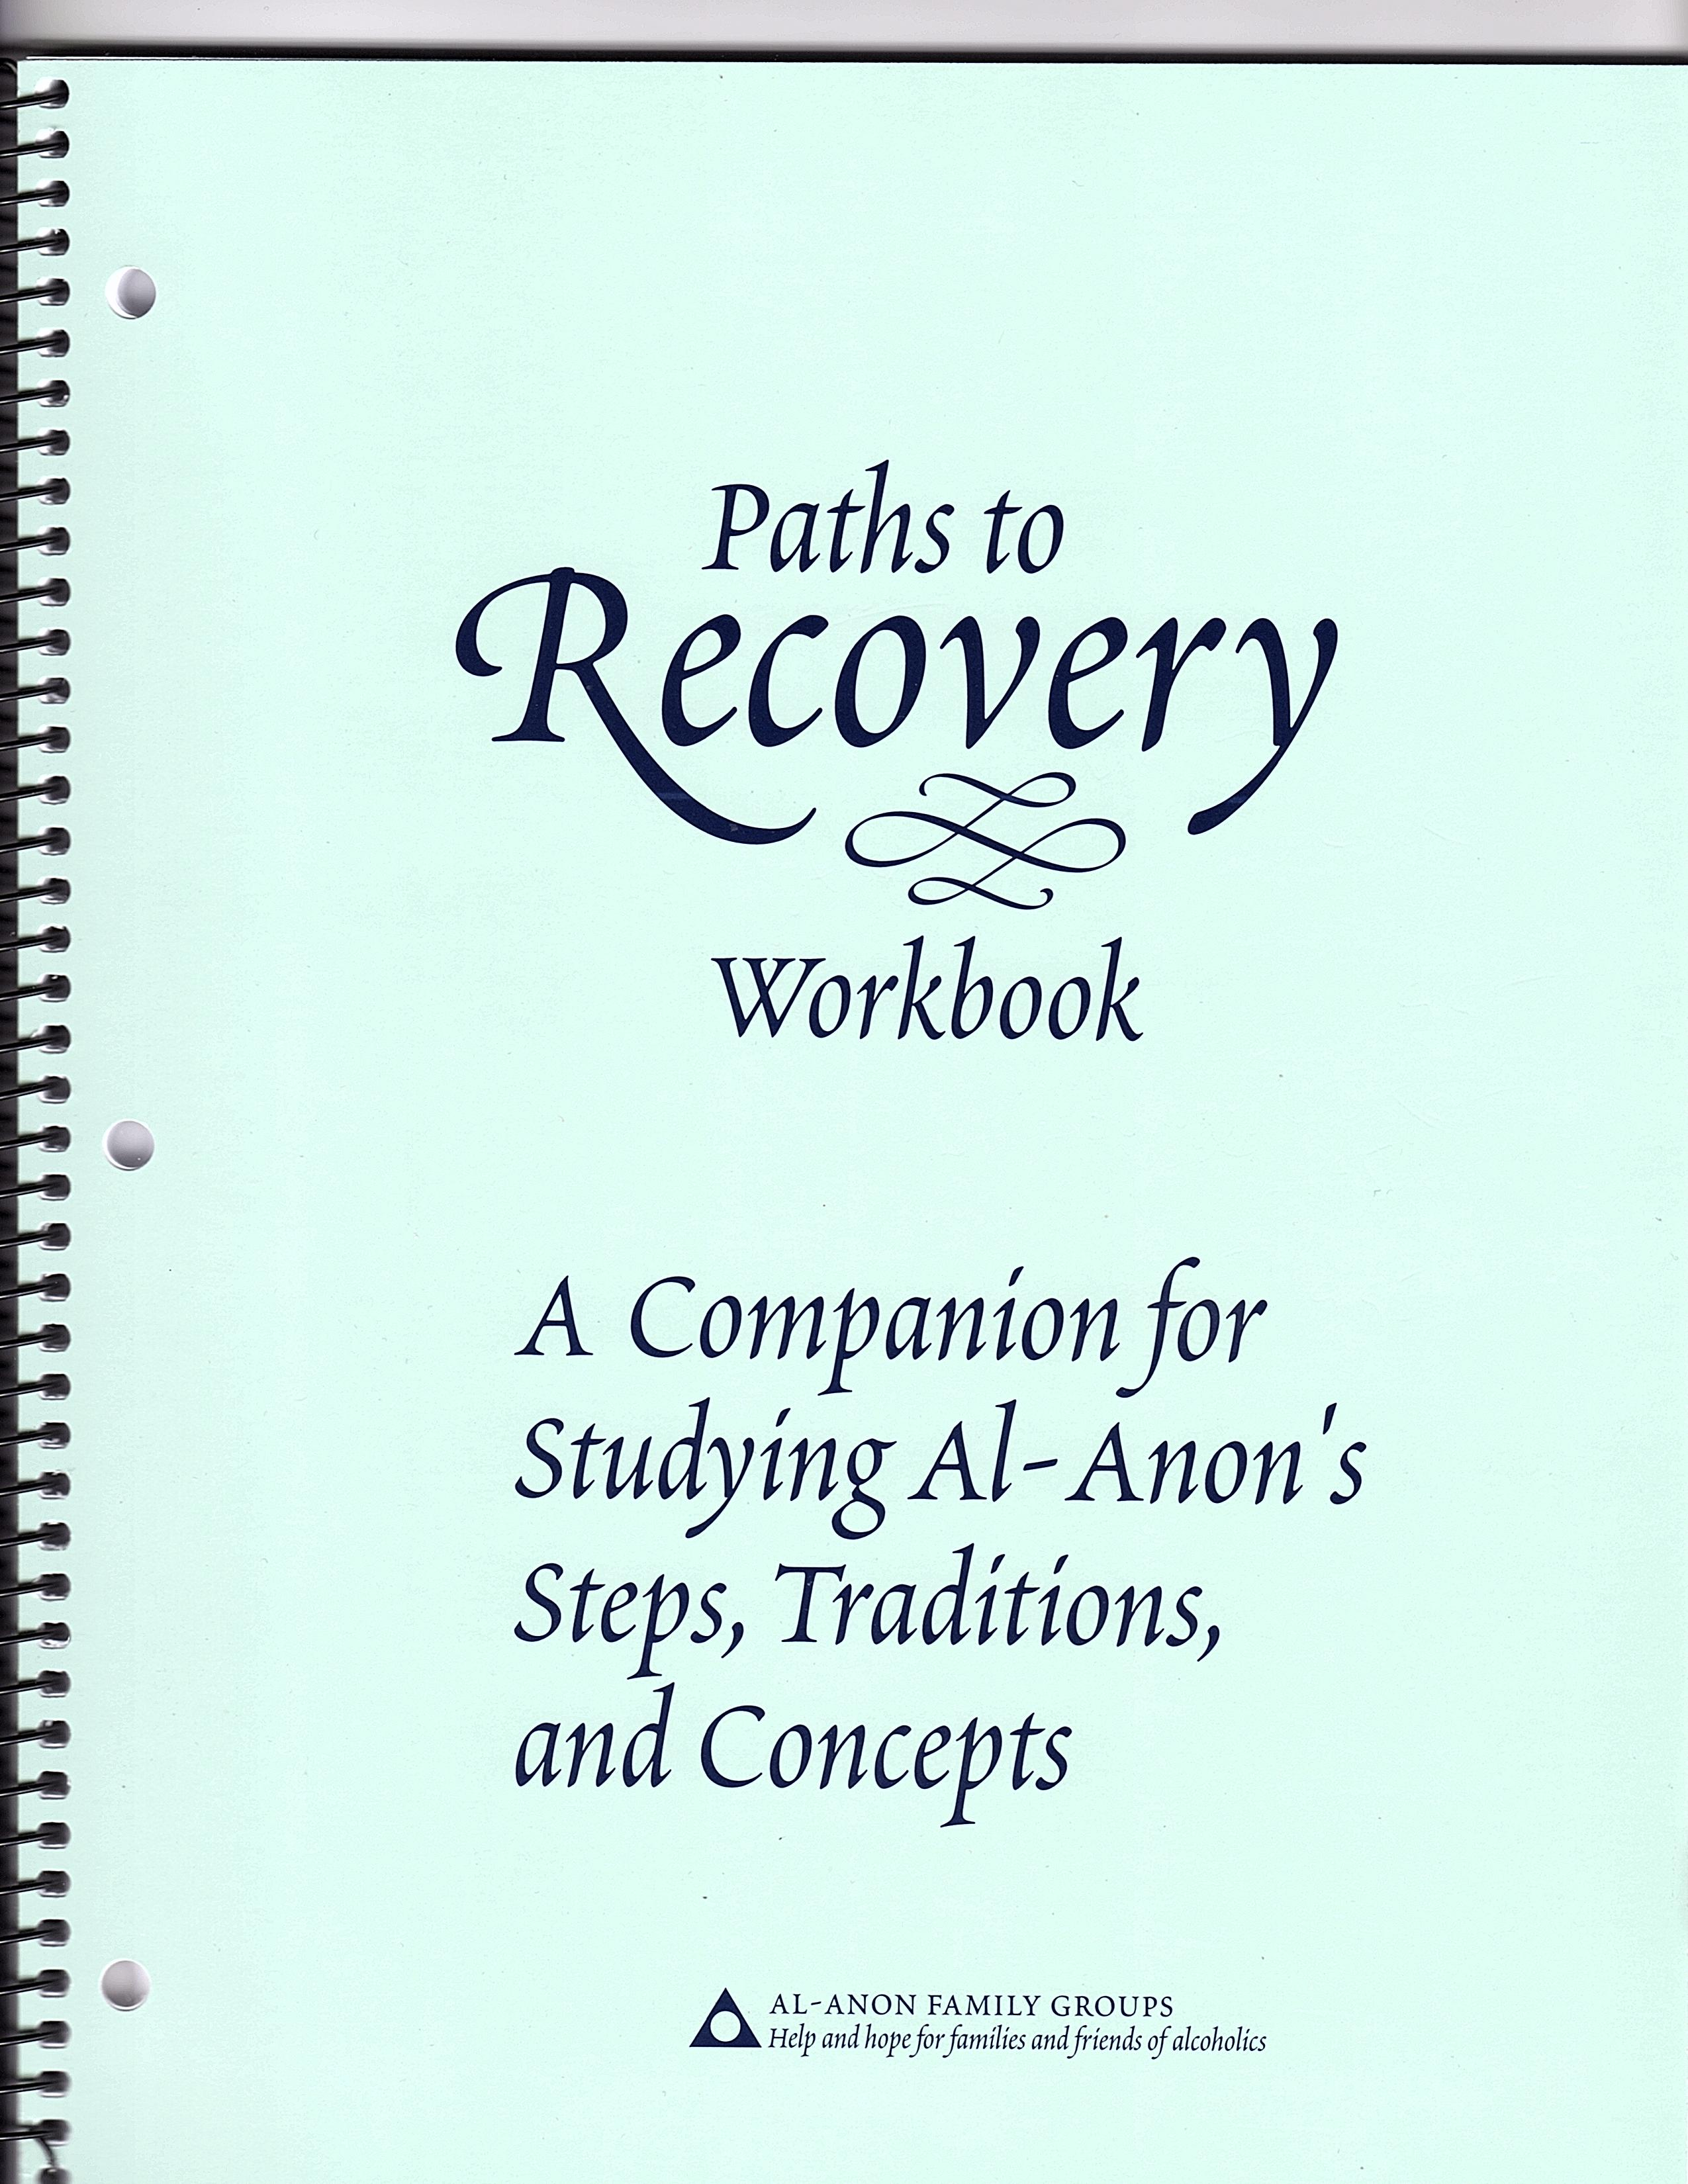 al anon paths to recovery pdf